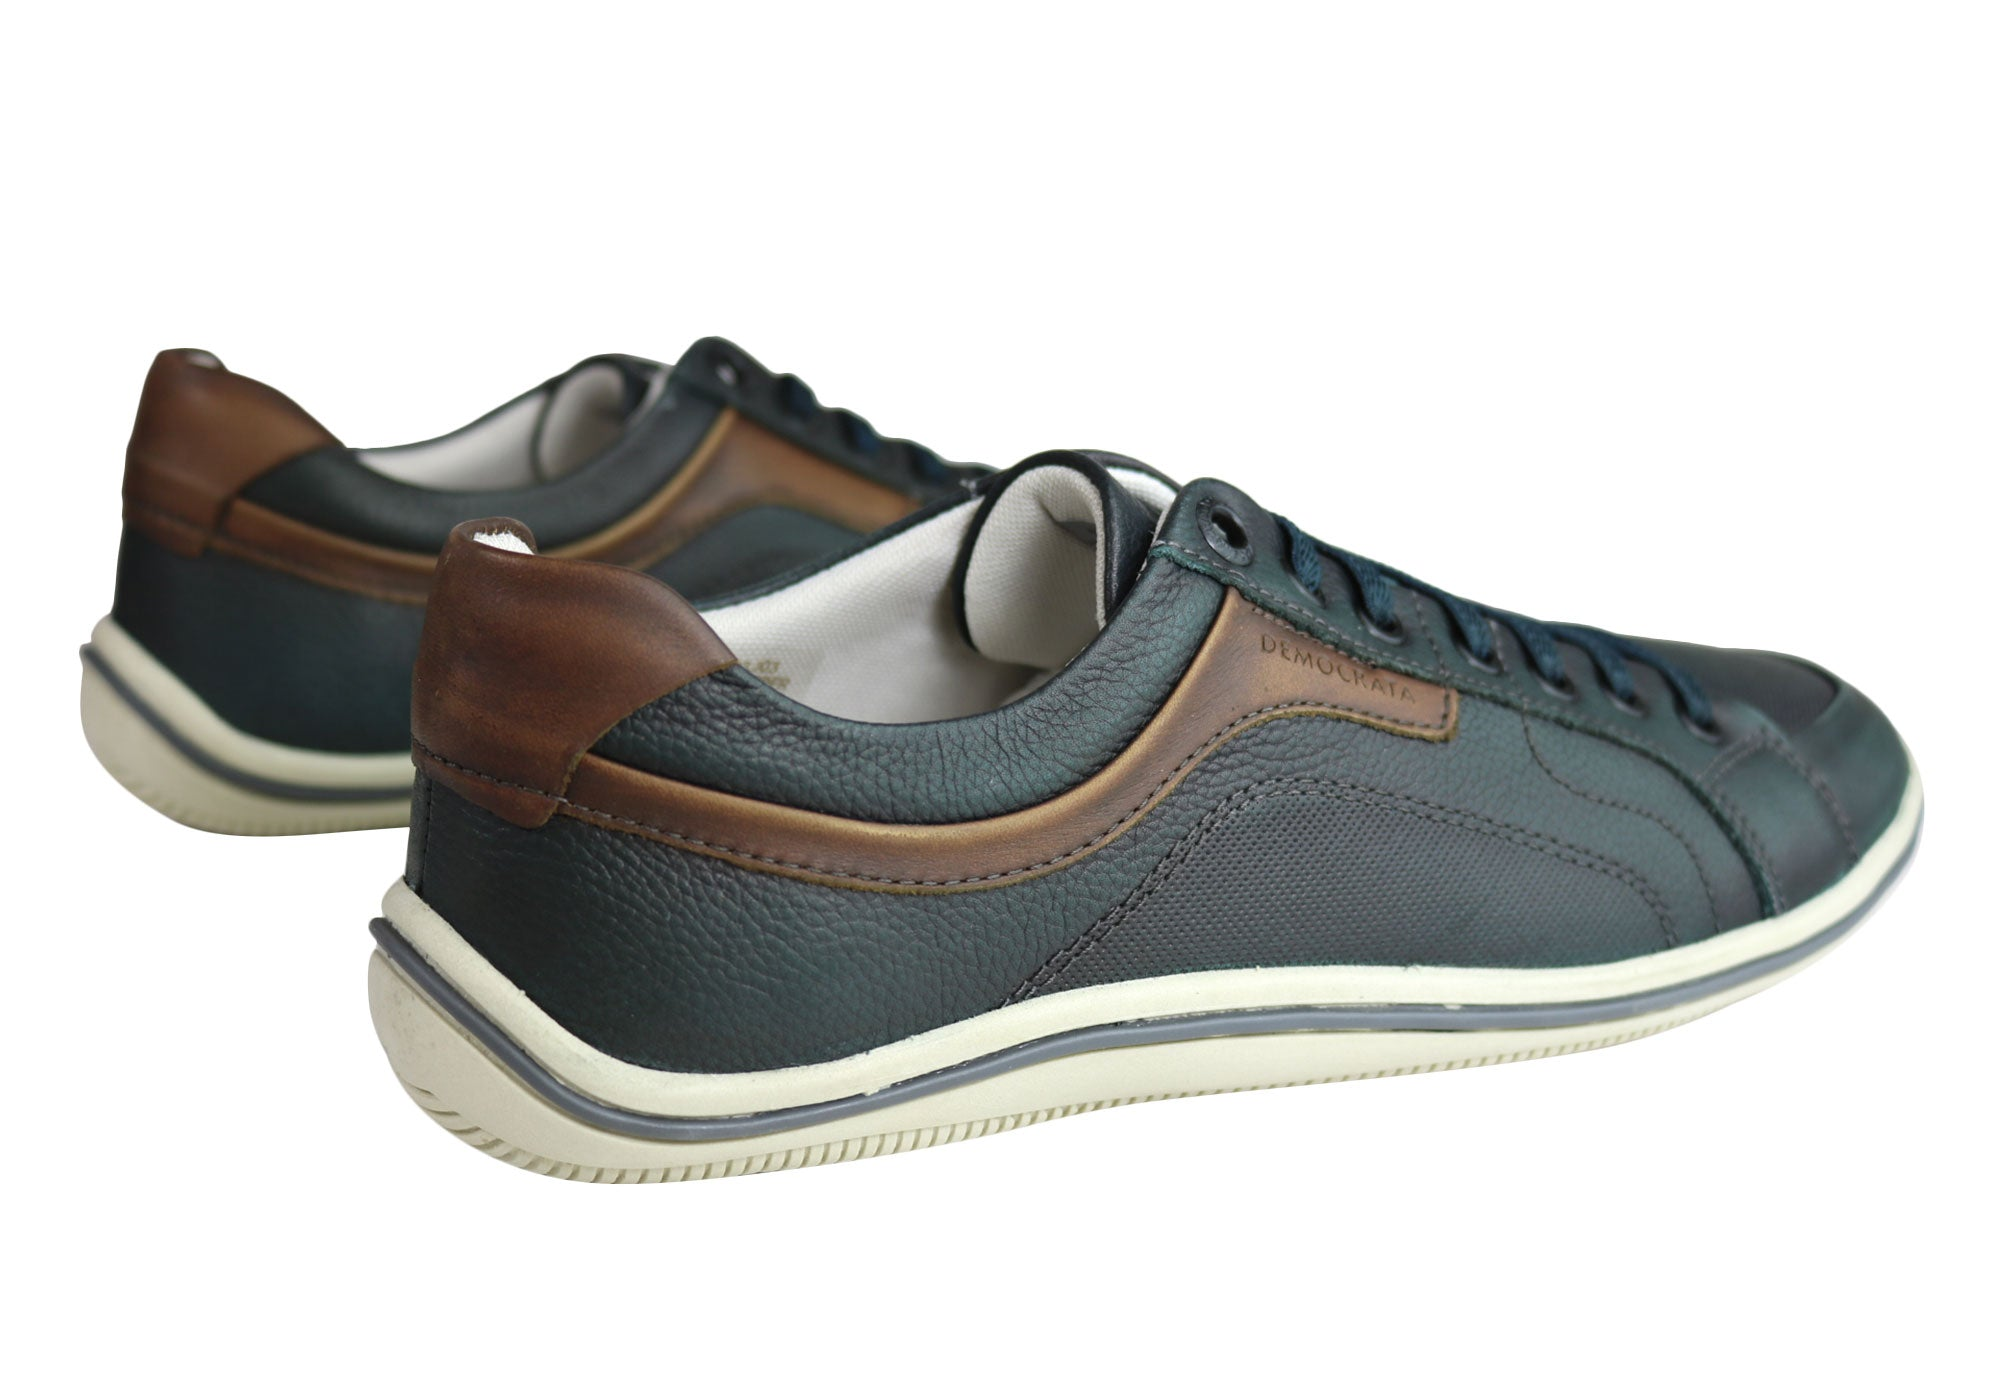 NEW-DEMOCRATA-MILES-MENS-LEATHER-SLIP-ON-CASUAL-SHOES-MADE-IN-BRAZIL thumbnail 11